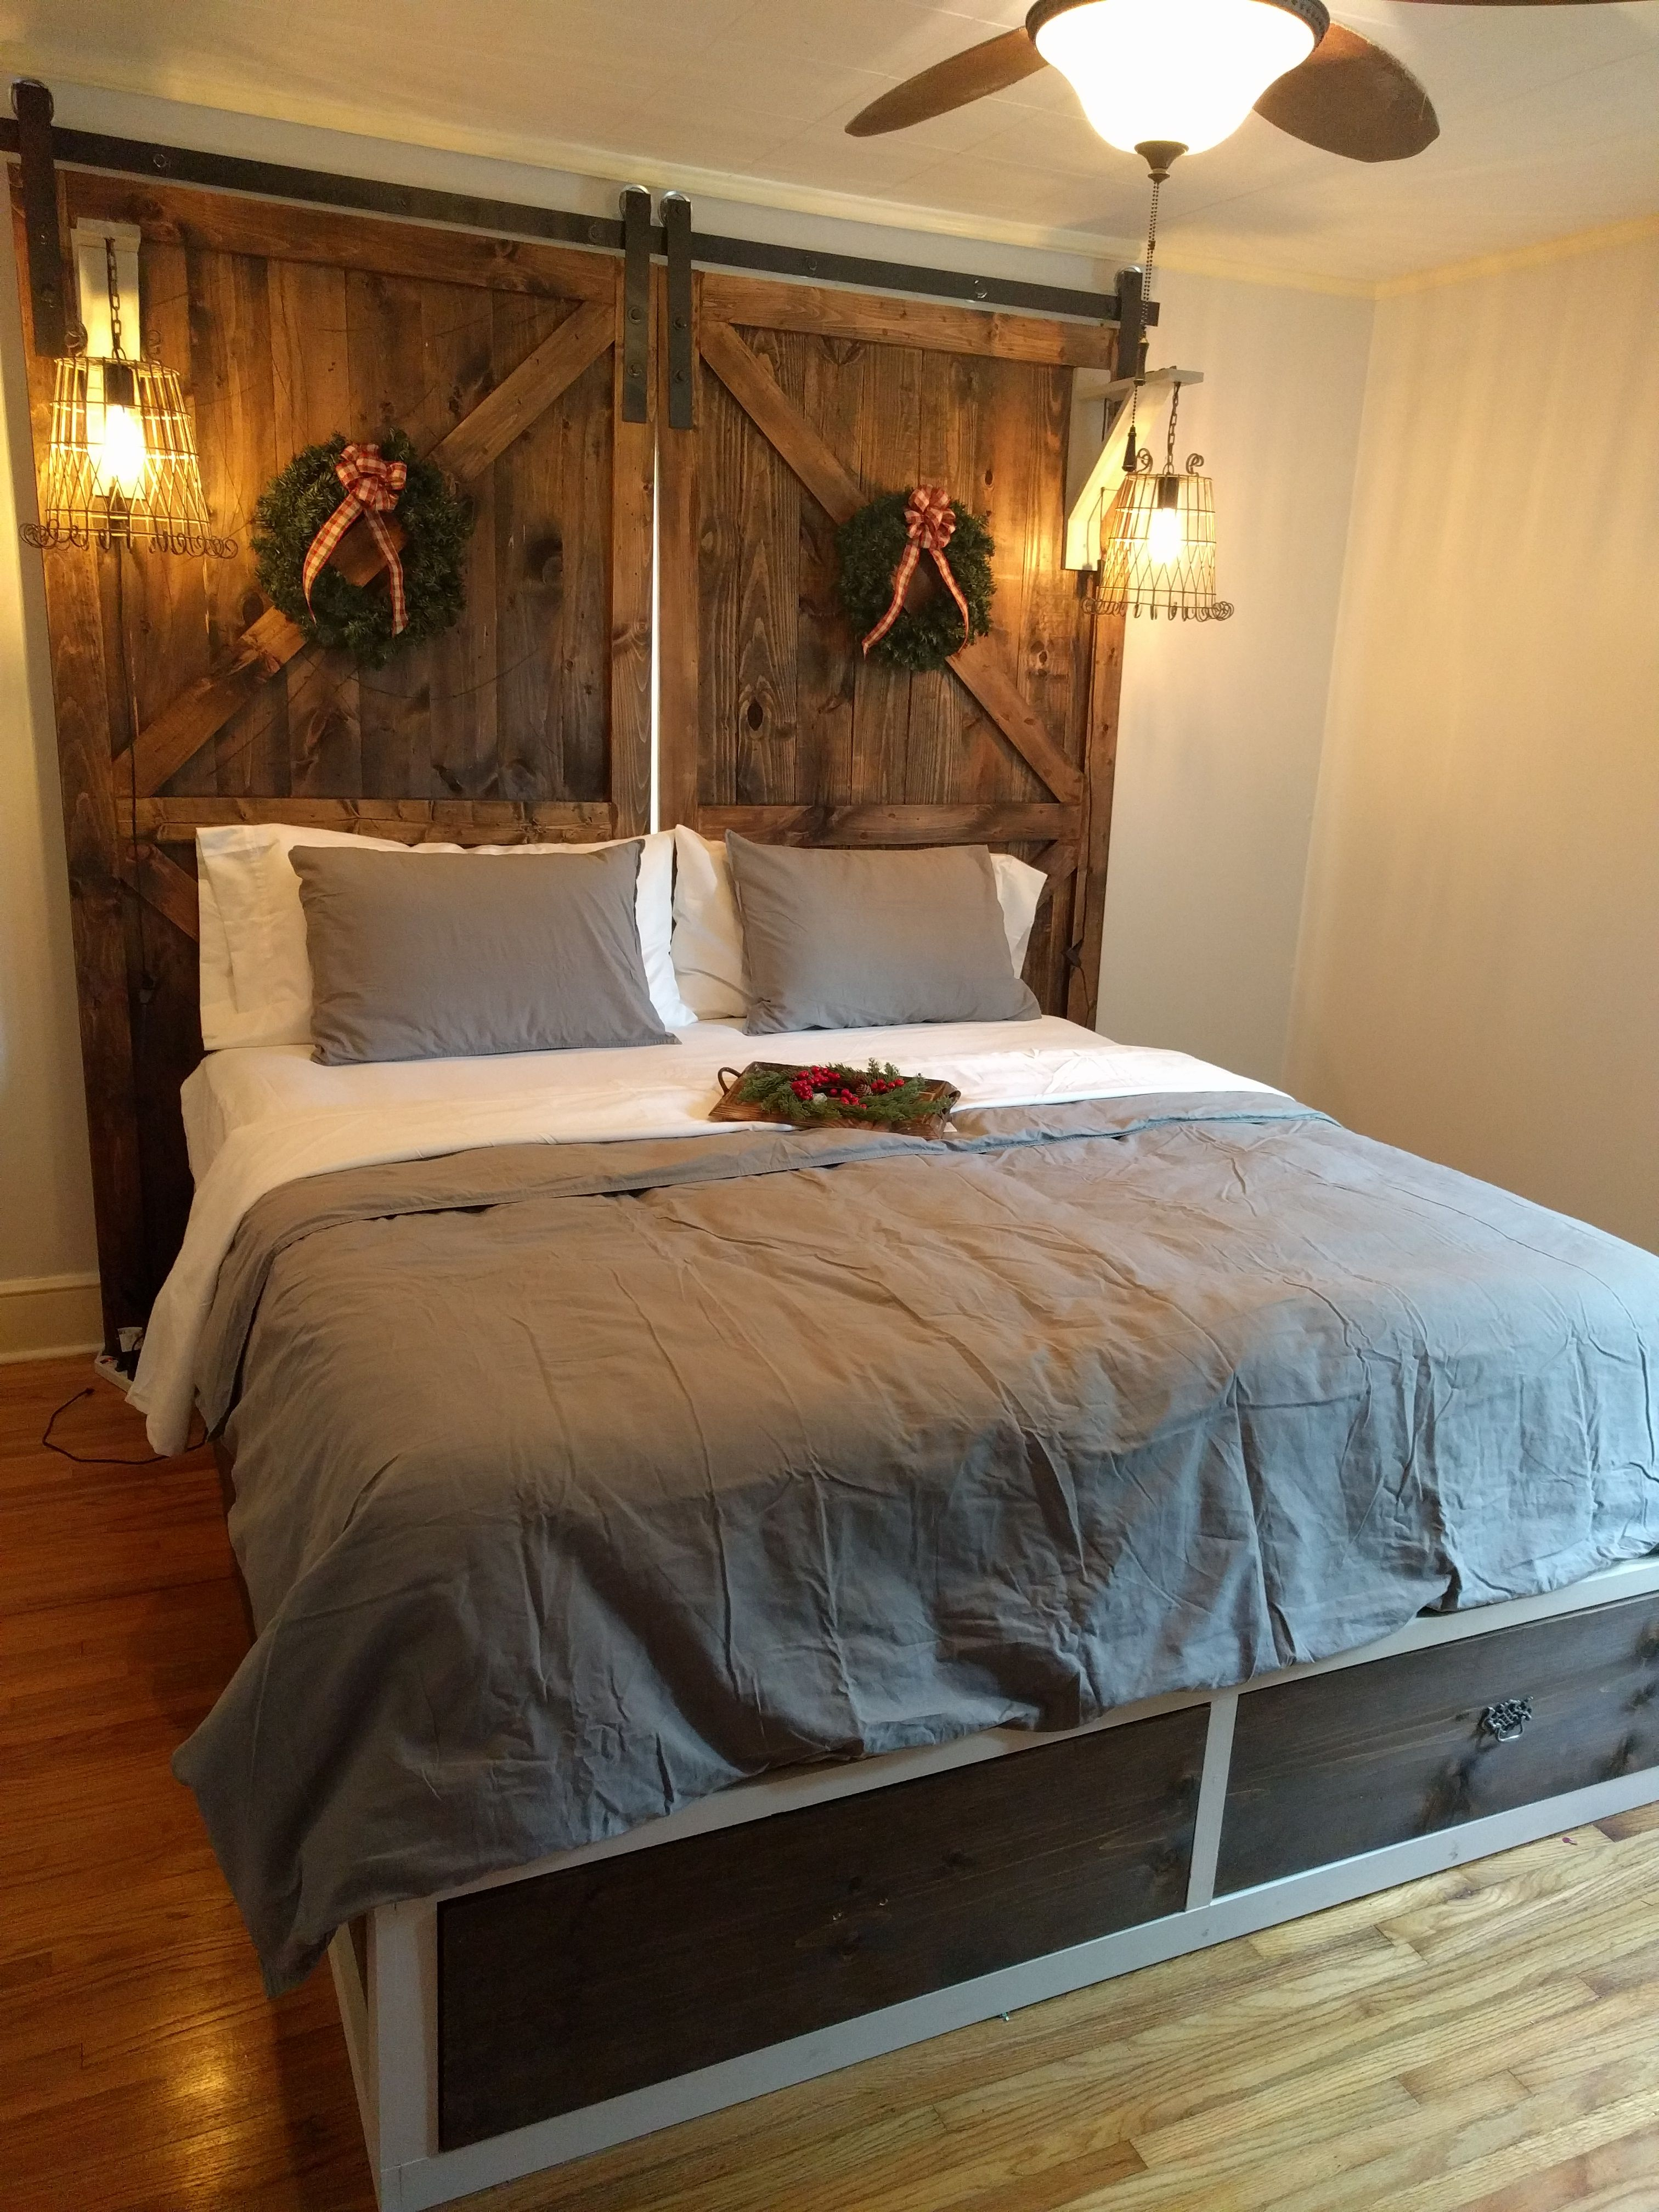 Pin By Bob Recio On Woodworking Projects Bed Storage Bedroom Bed